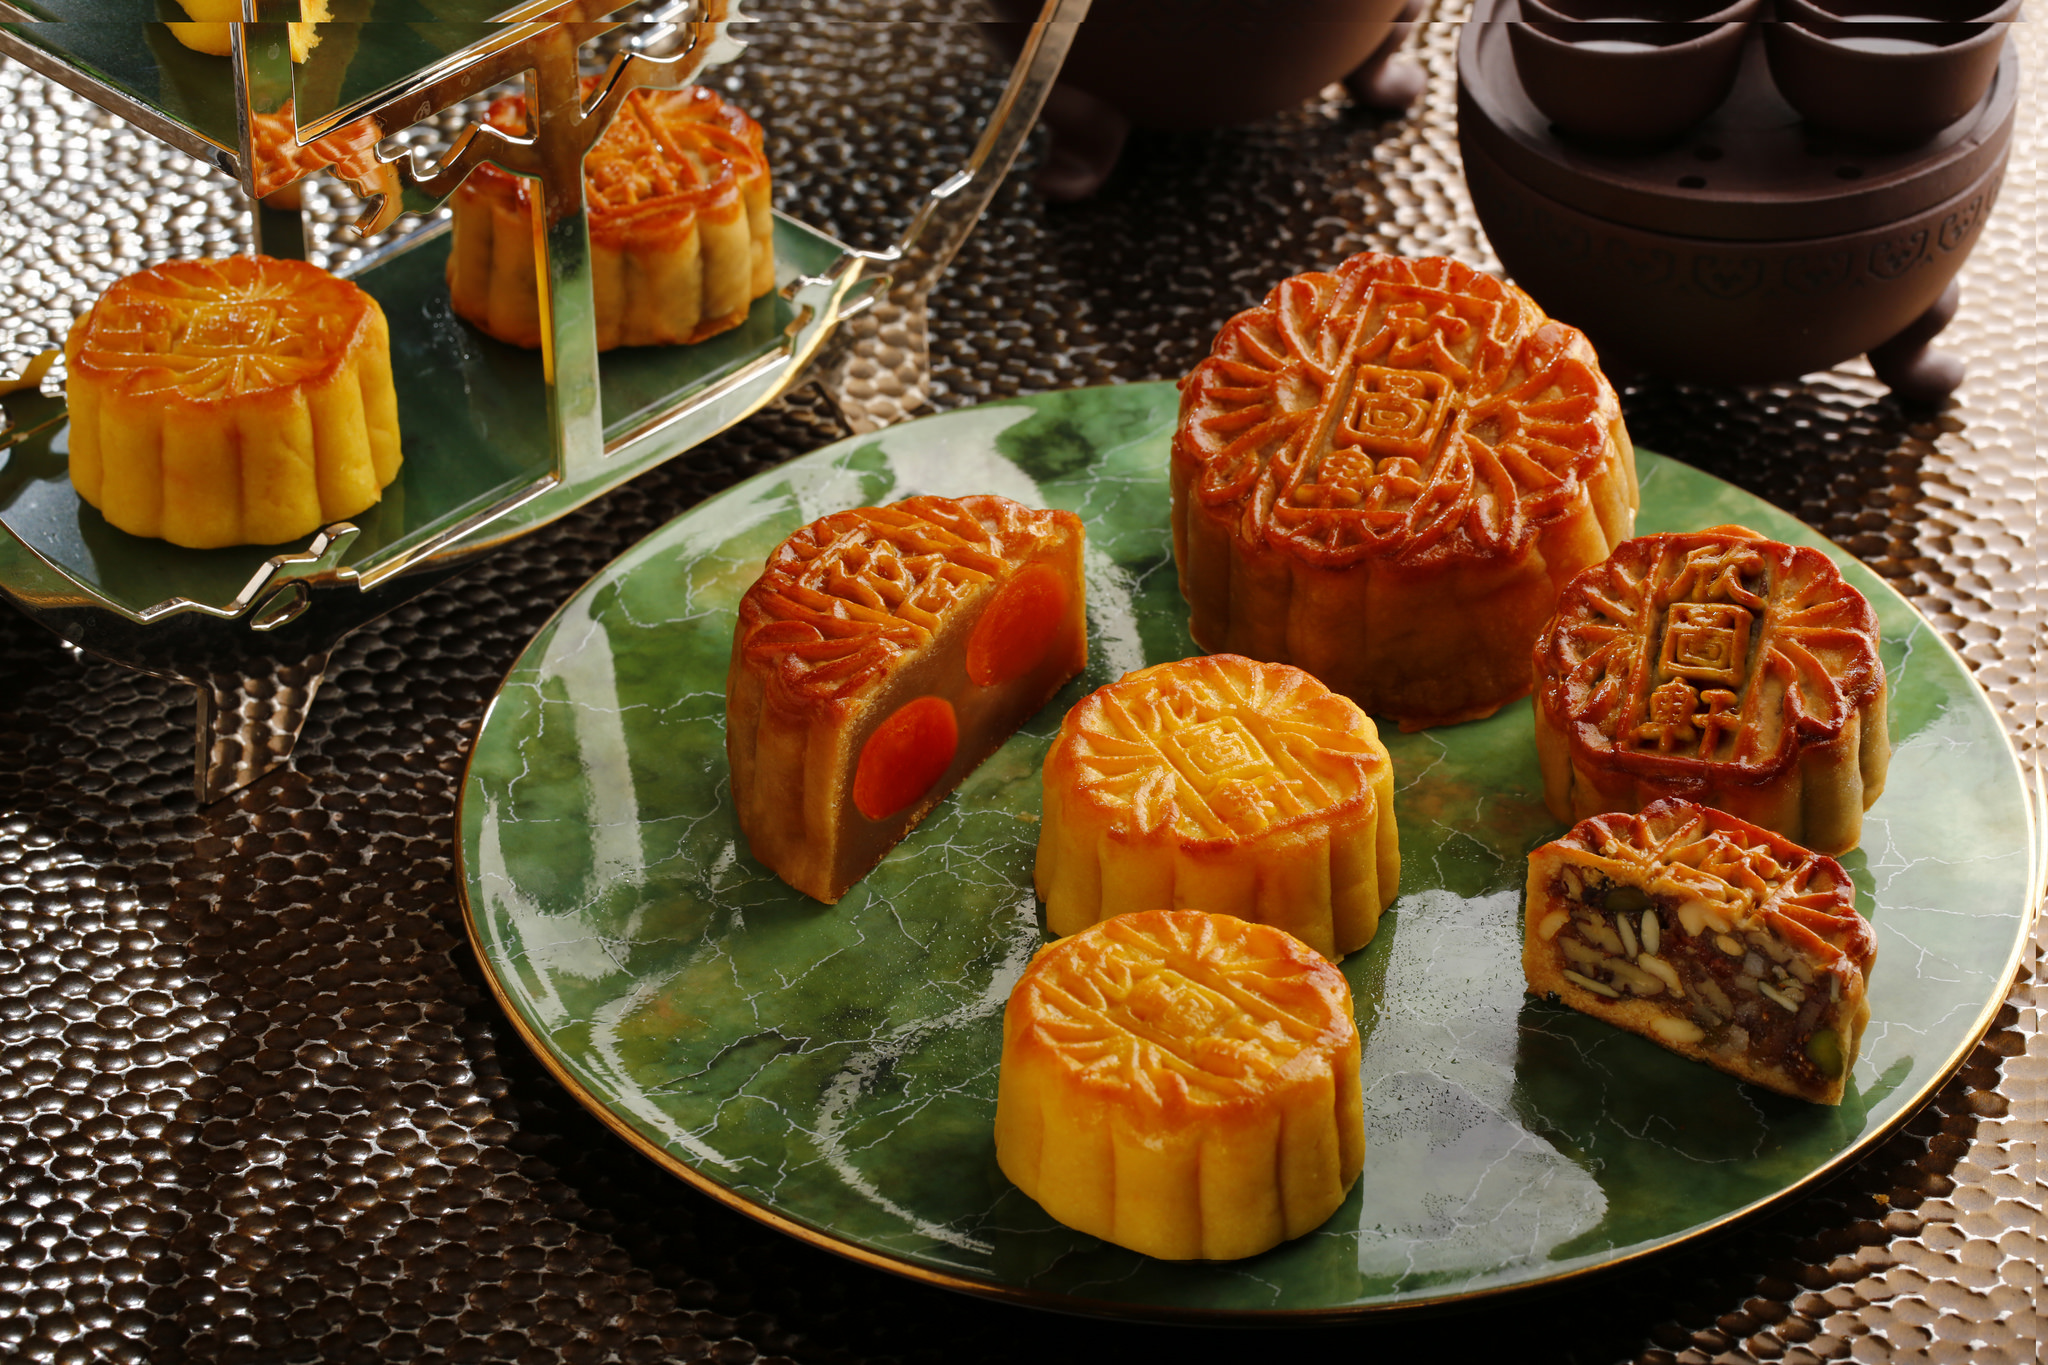 A selection of mooncakes | InterContinental Hong Kong/CC BY 2.0/Flickr